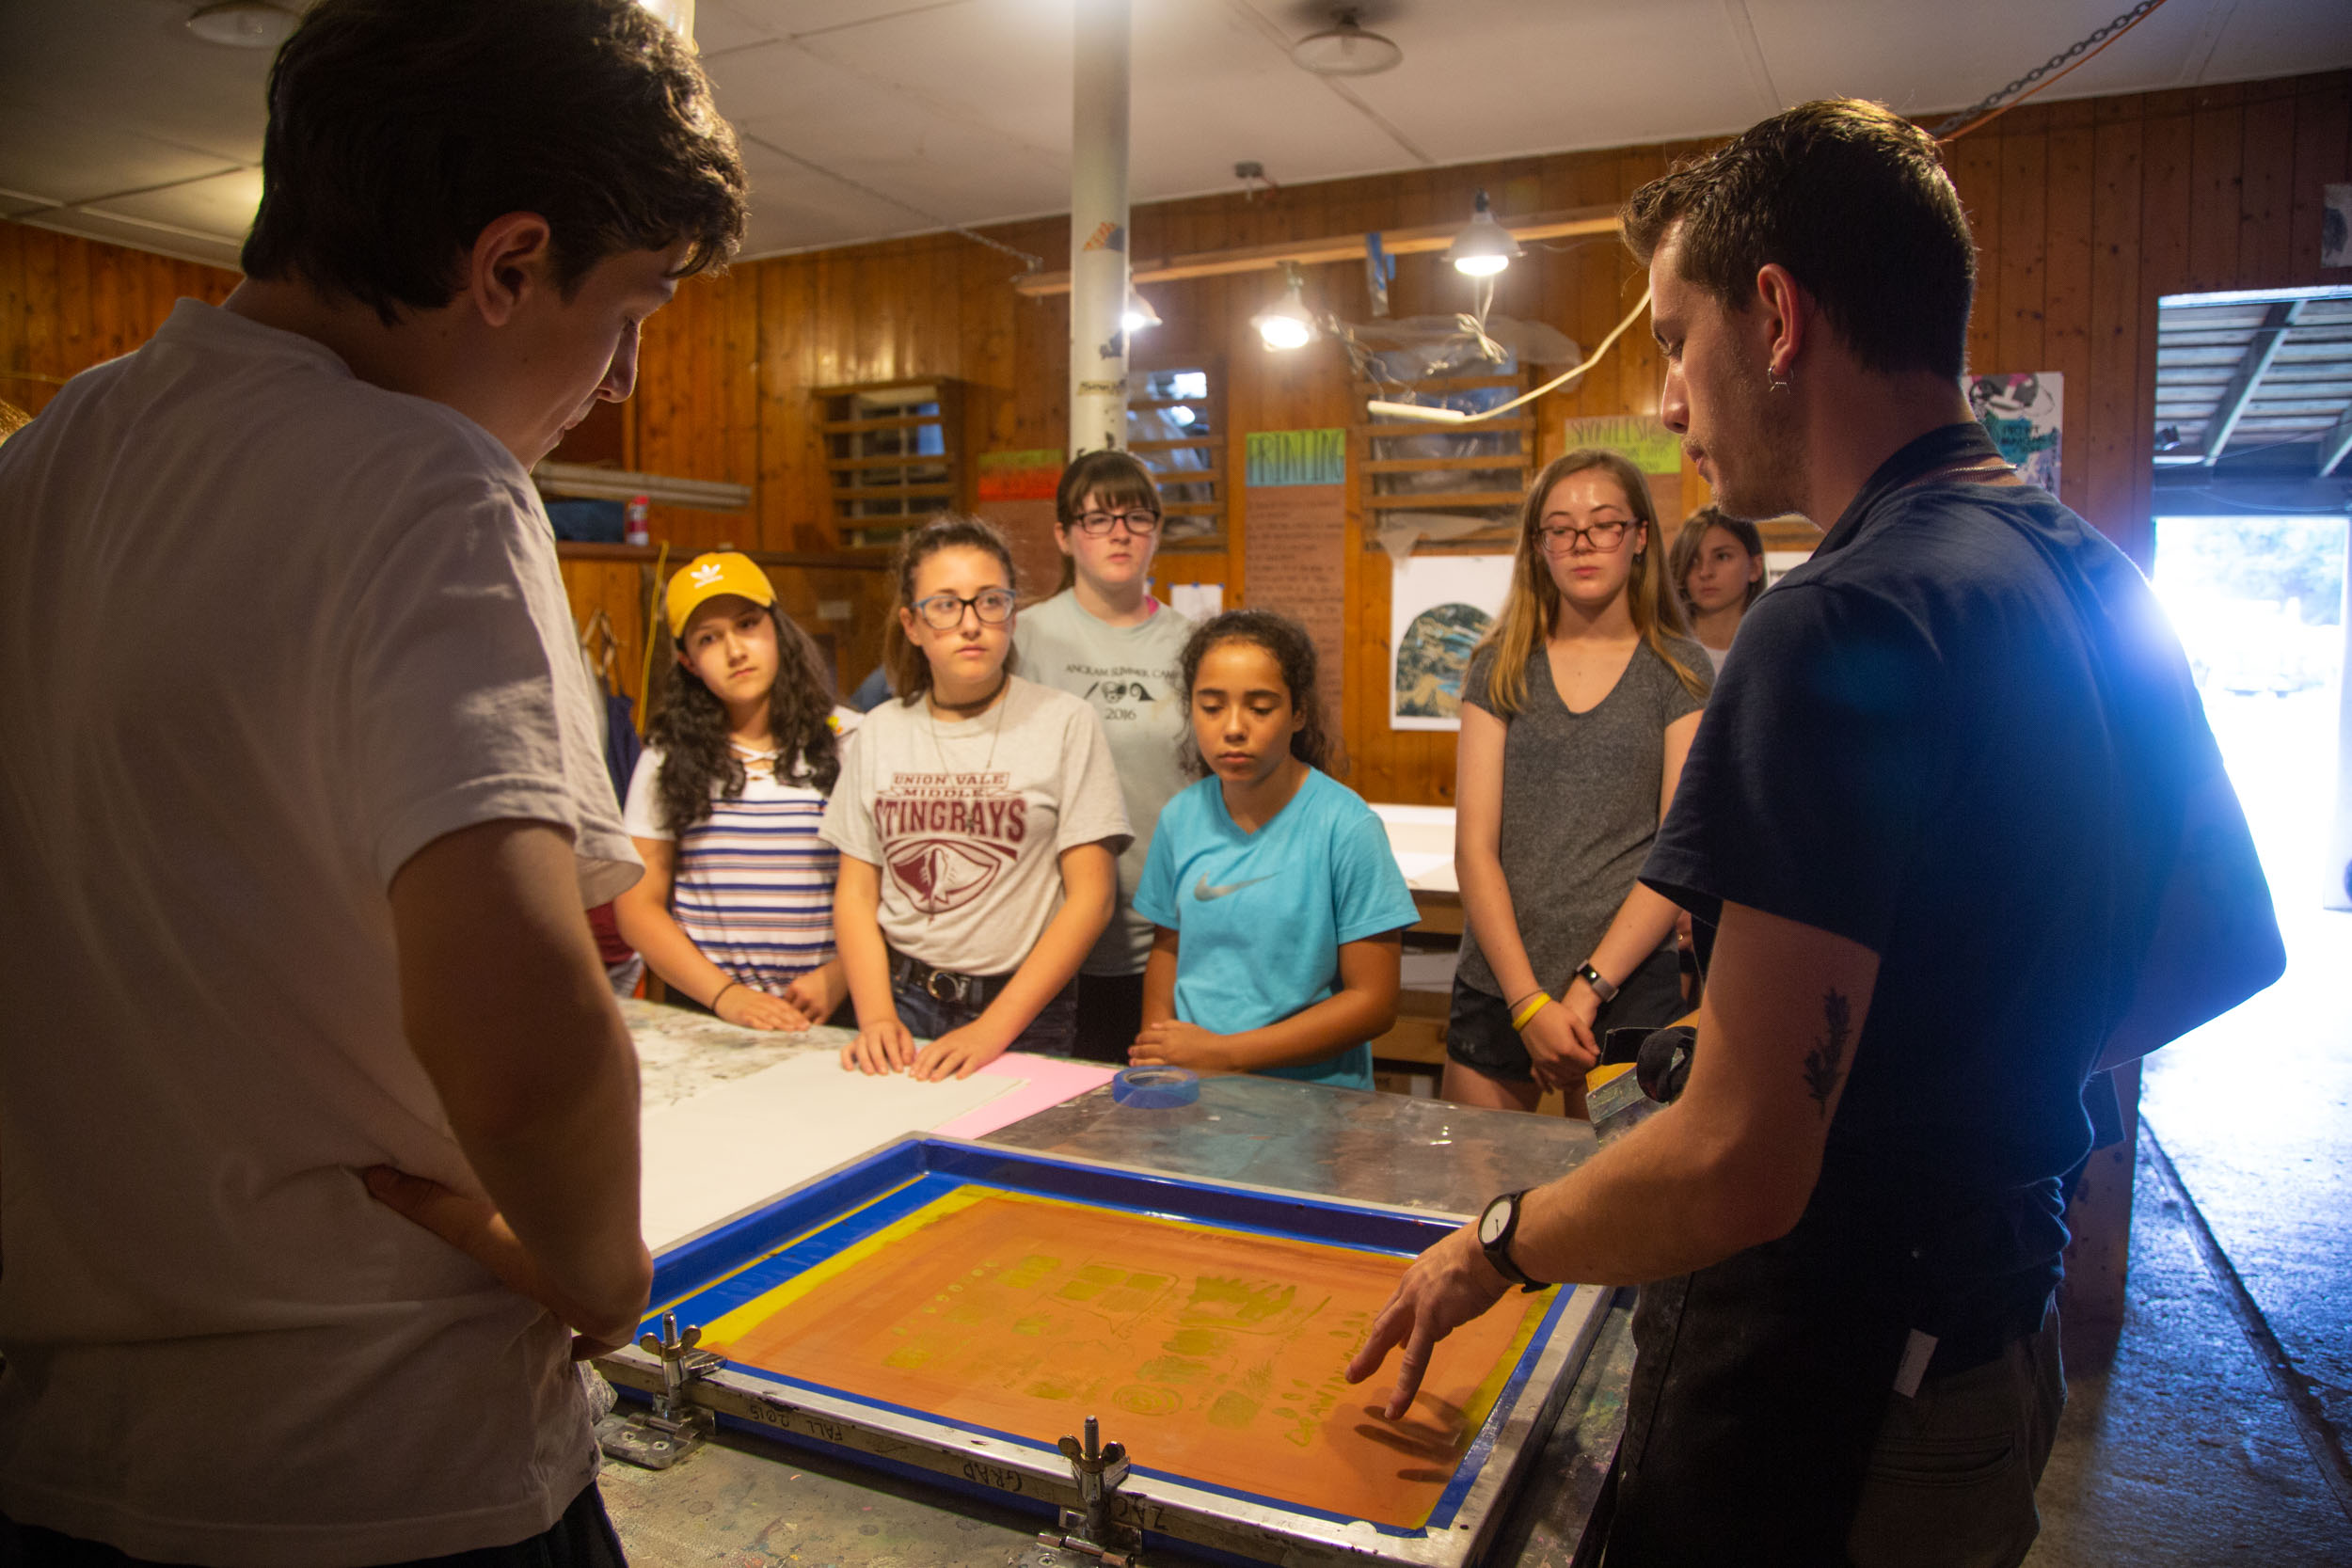 wassaic-project-education-teen-screenprinting-camp-2018-08-15-10-53-12.jpg